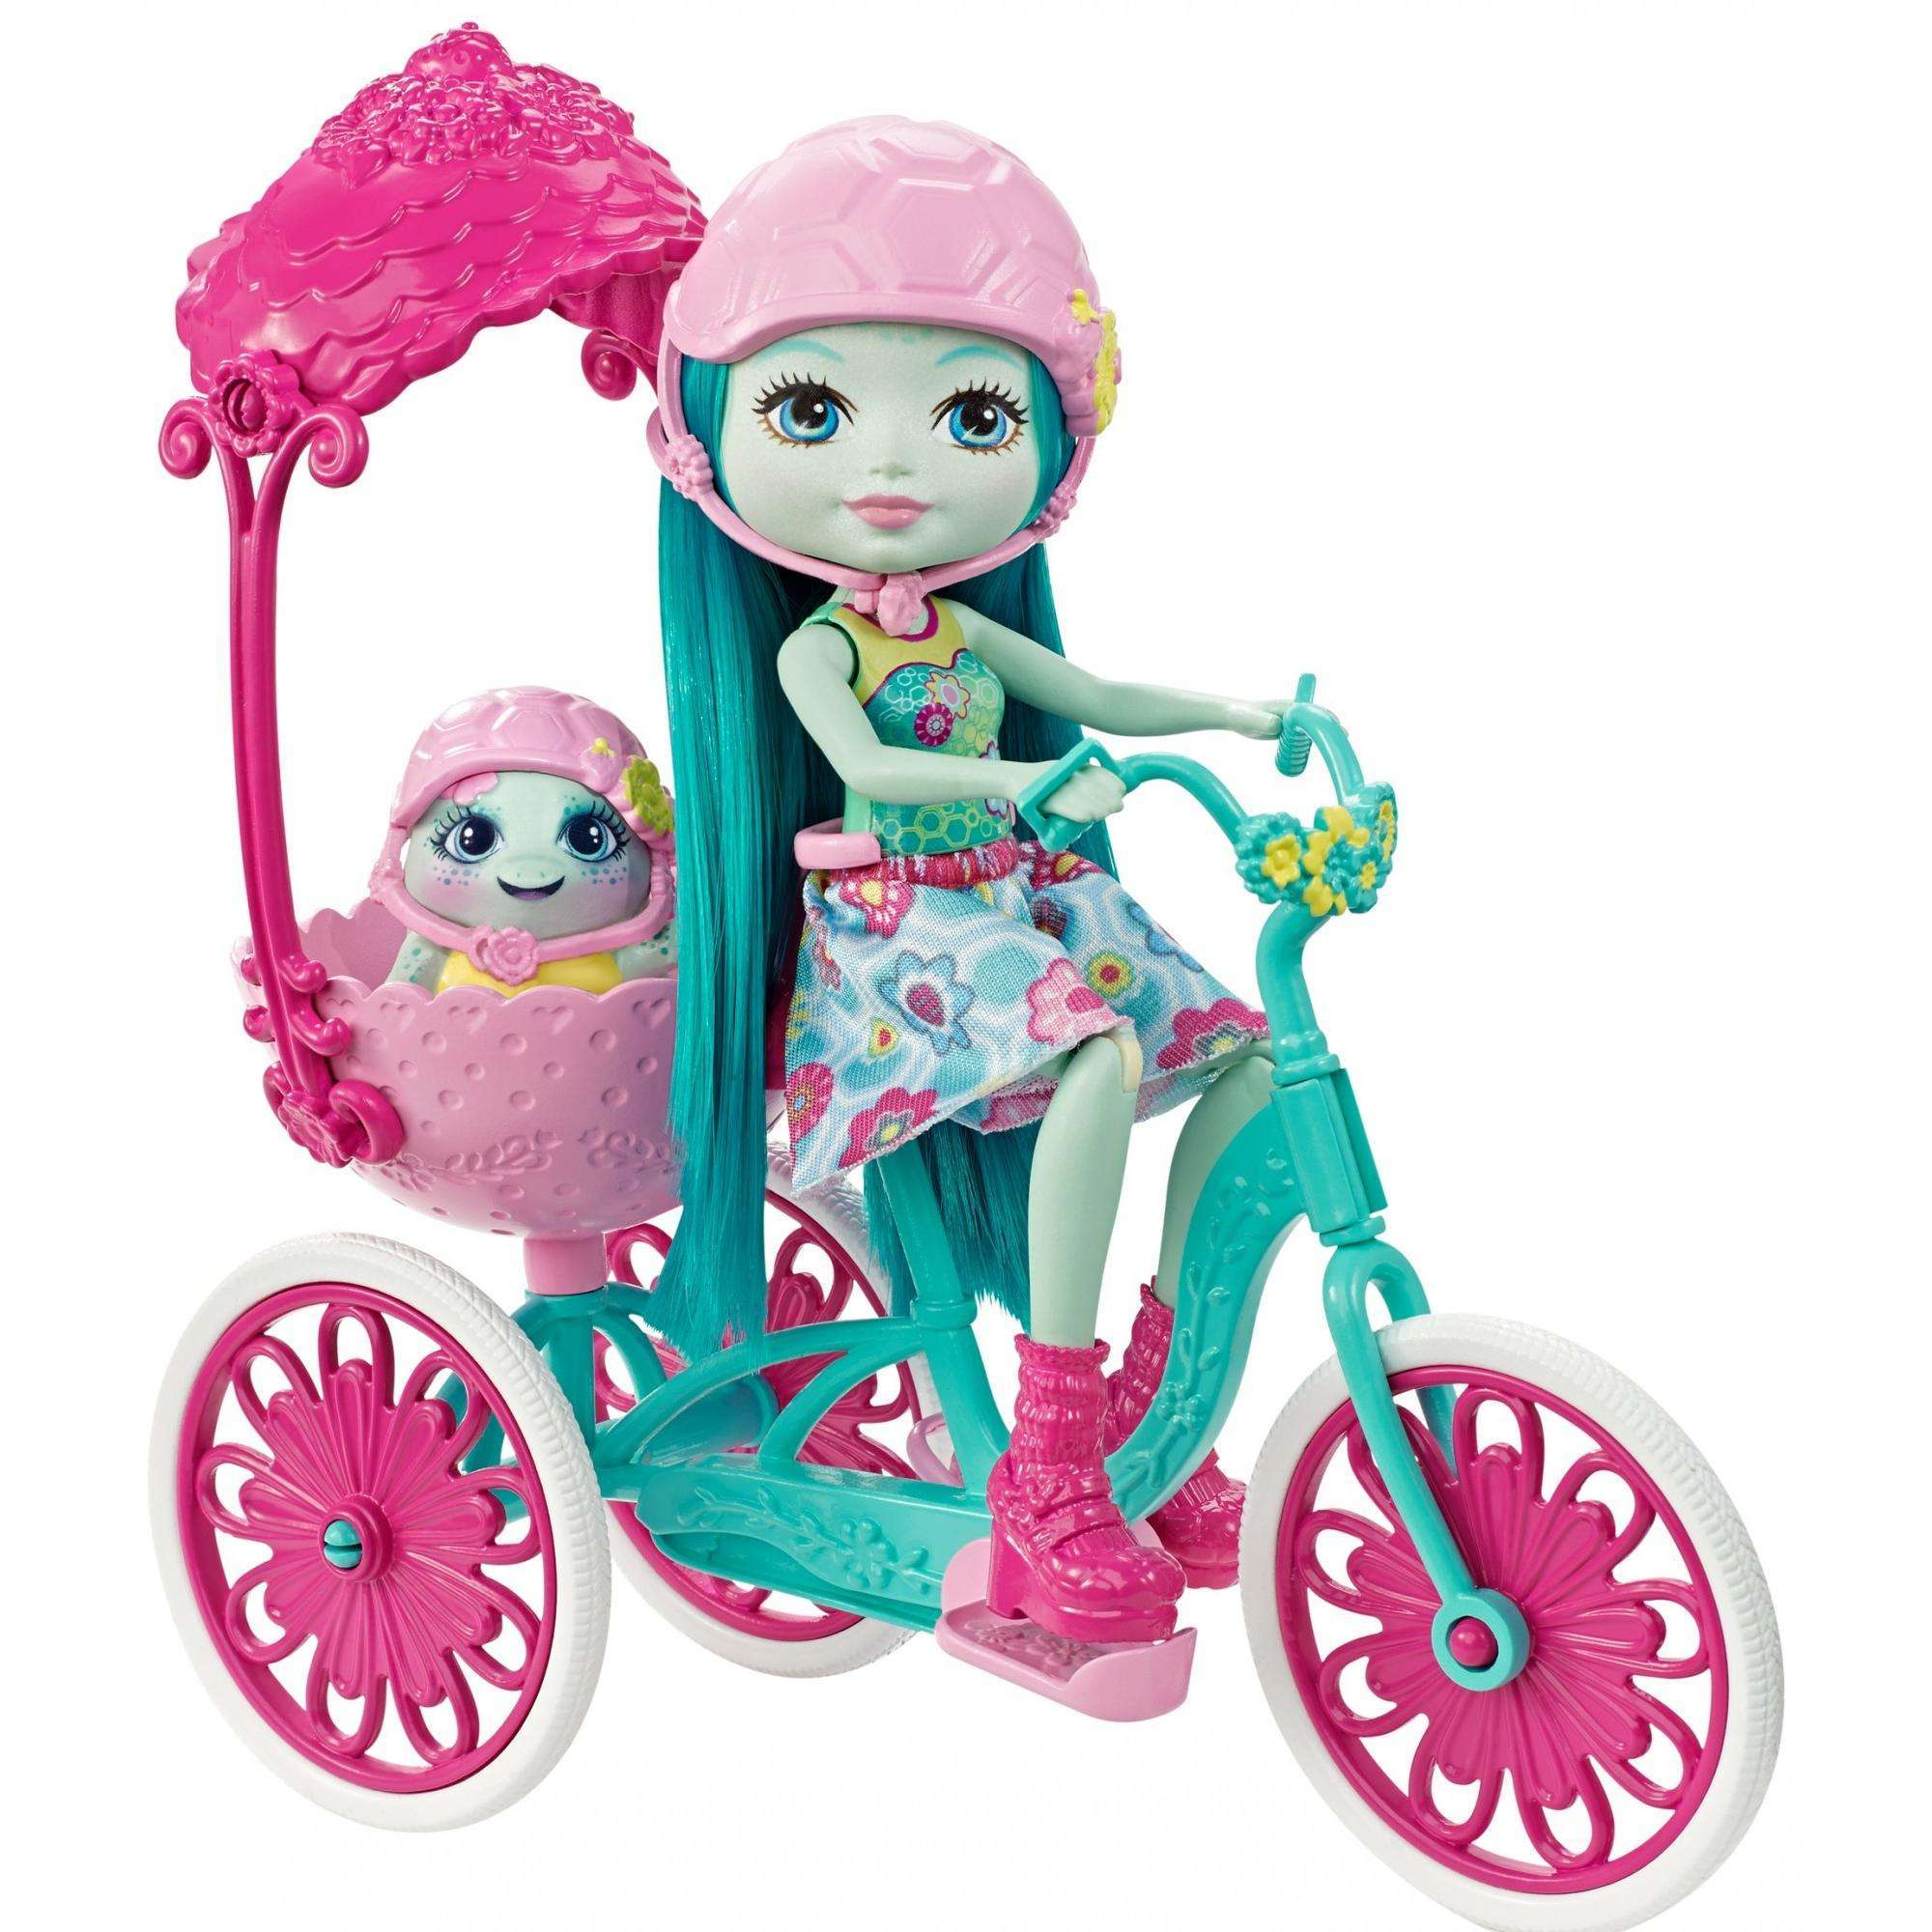 Enchantimals Built for Two Doll Playset, Turtle & Tricycle